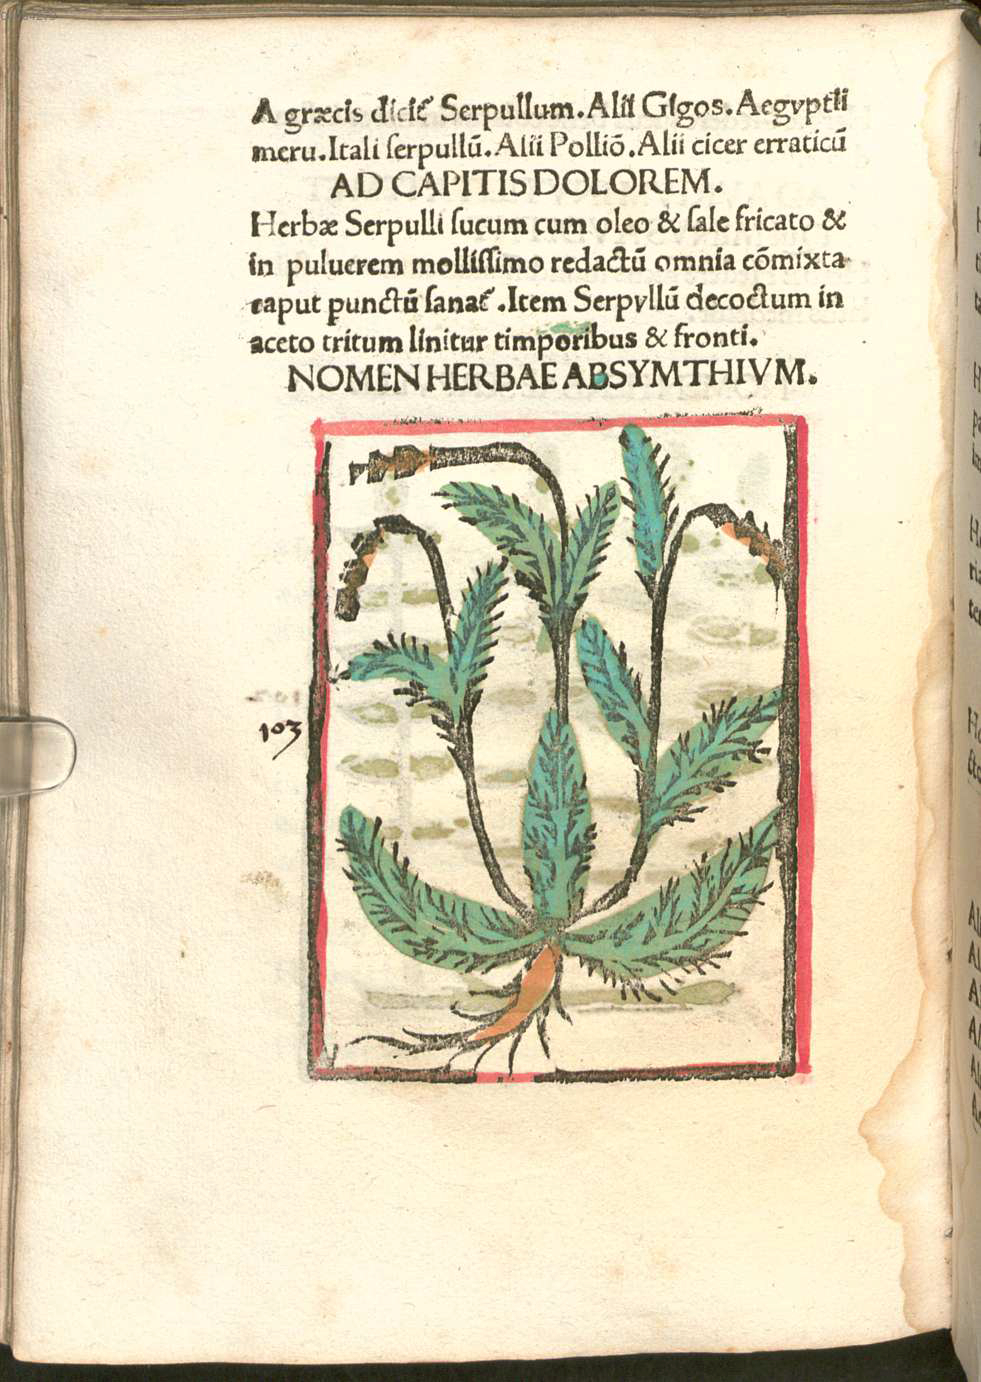 Detail of page from Herbarium apulei with illustration of herb.  Please click to view entire image.